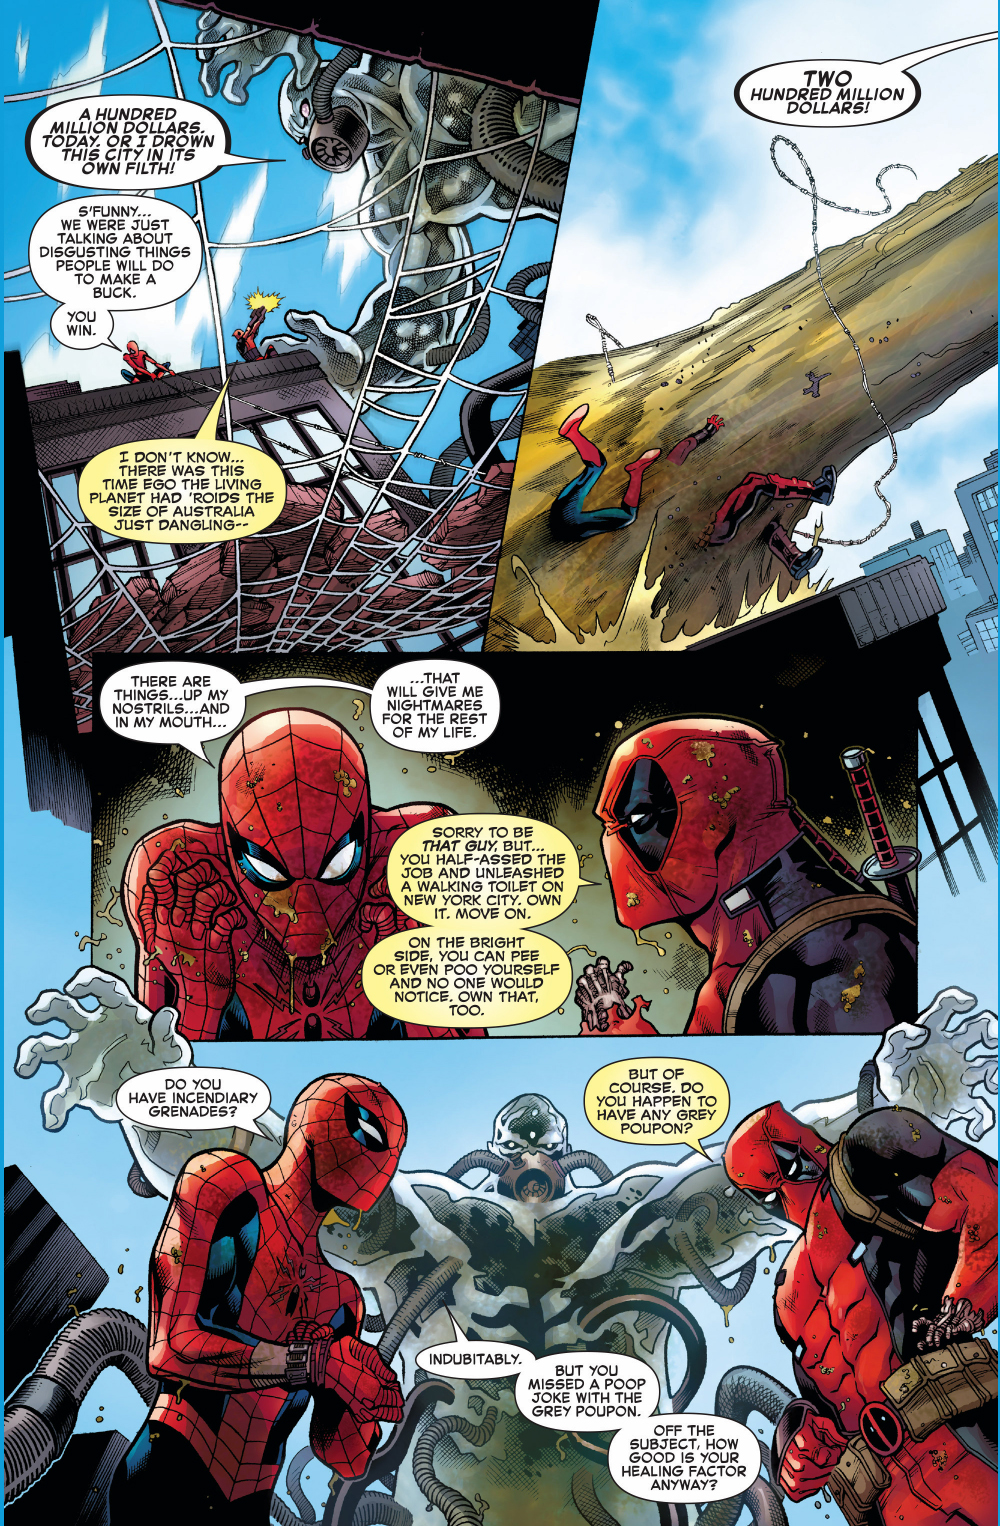 Yoda Wallpaper Quotes Spider Man And Deadpool Vs Hydro Man Comicnewbies